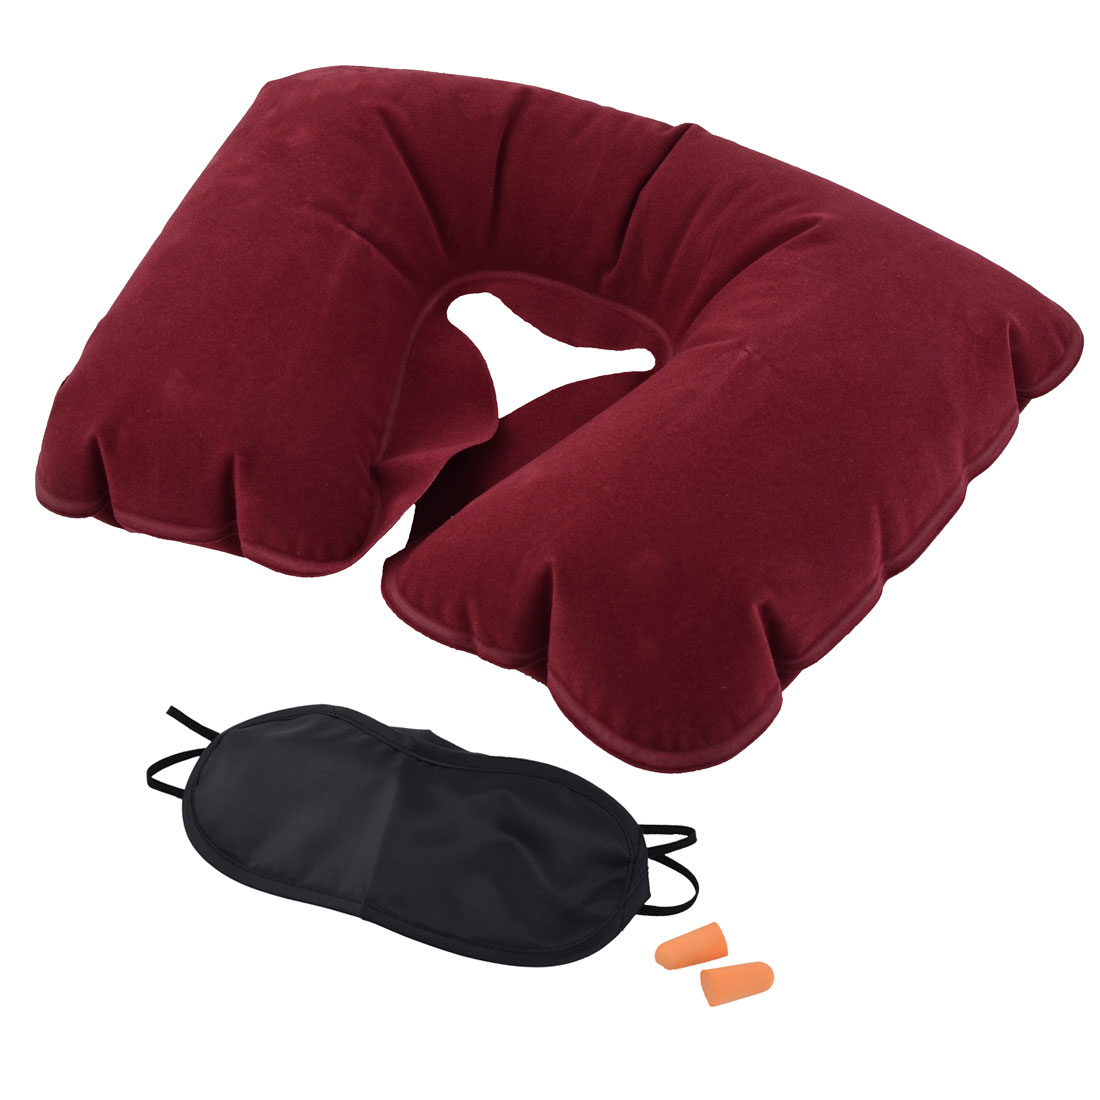 Home U Shape Pillow Relaxing Inflatable Neck Eyes Mask Earphone Burgundy 3 in 1